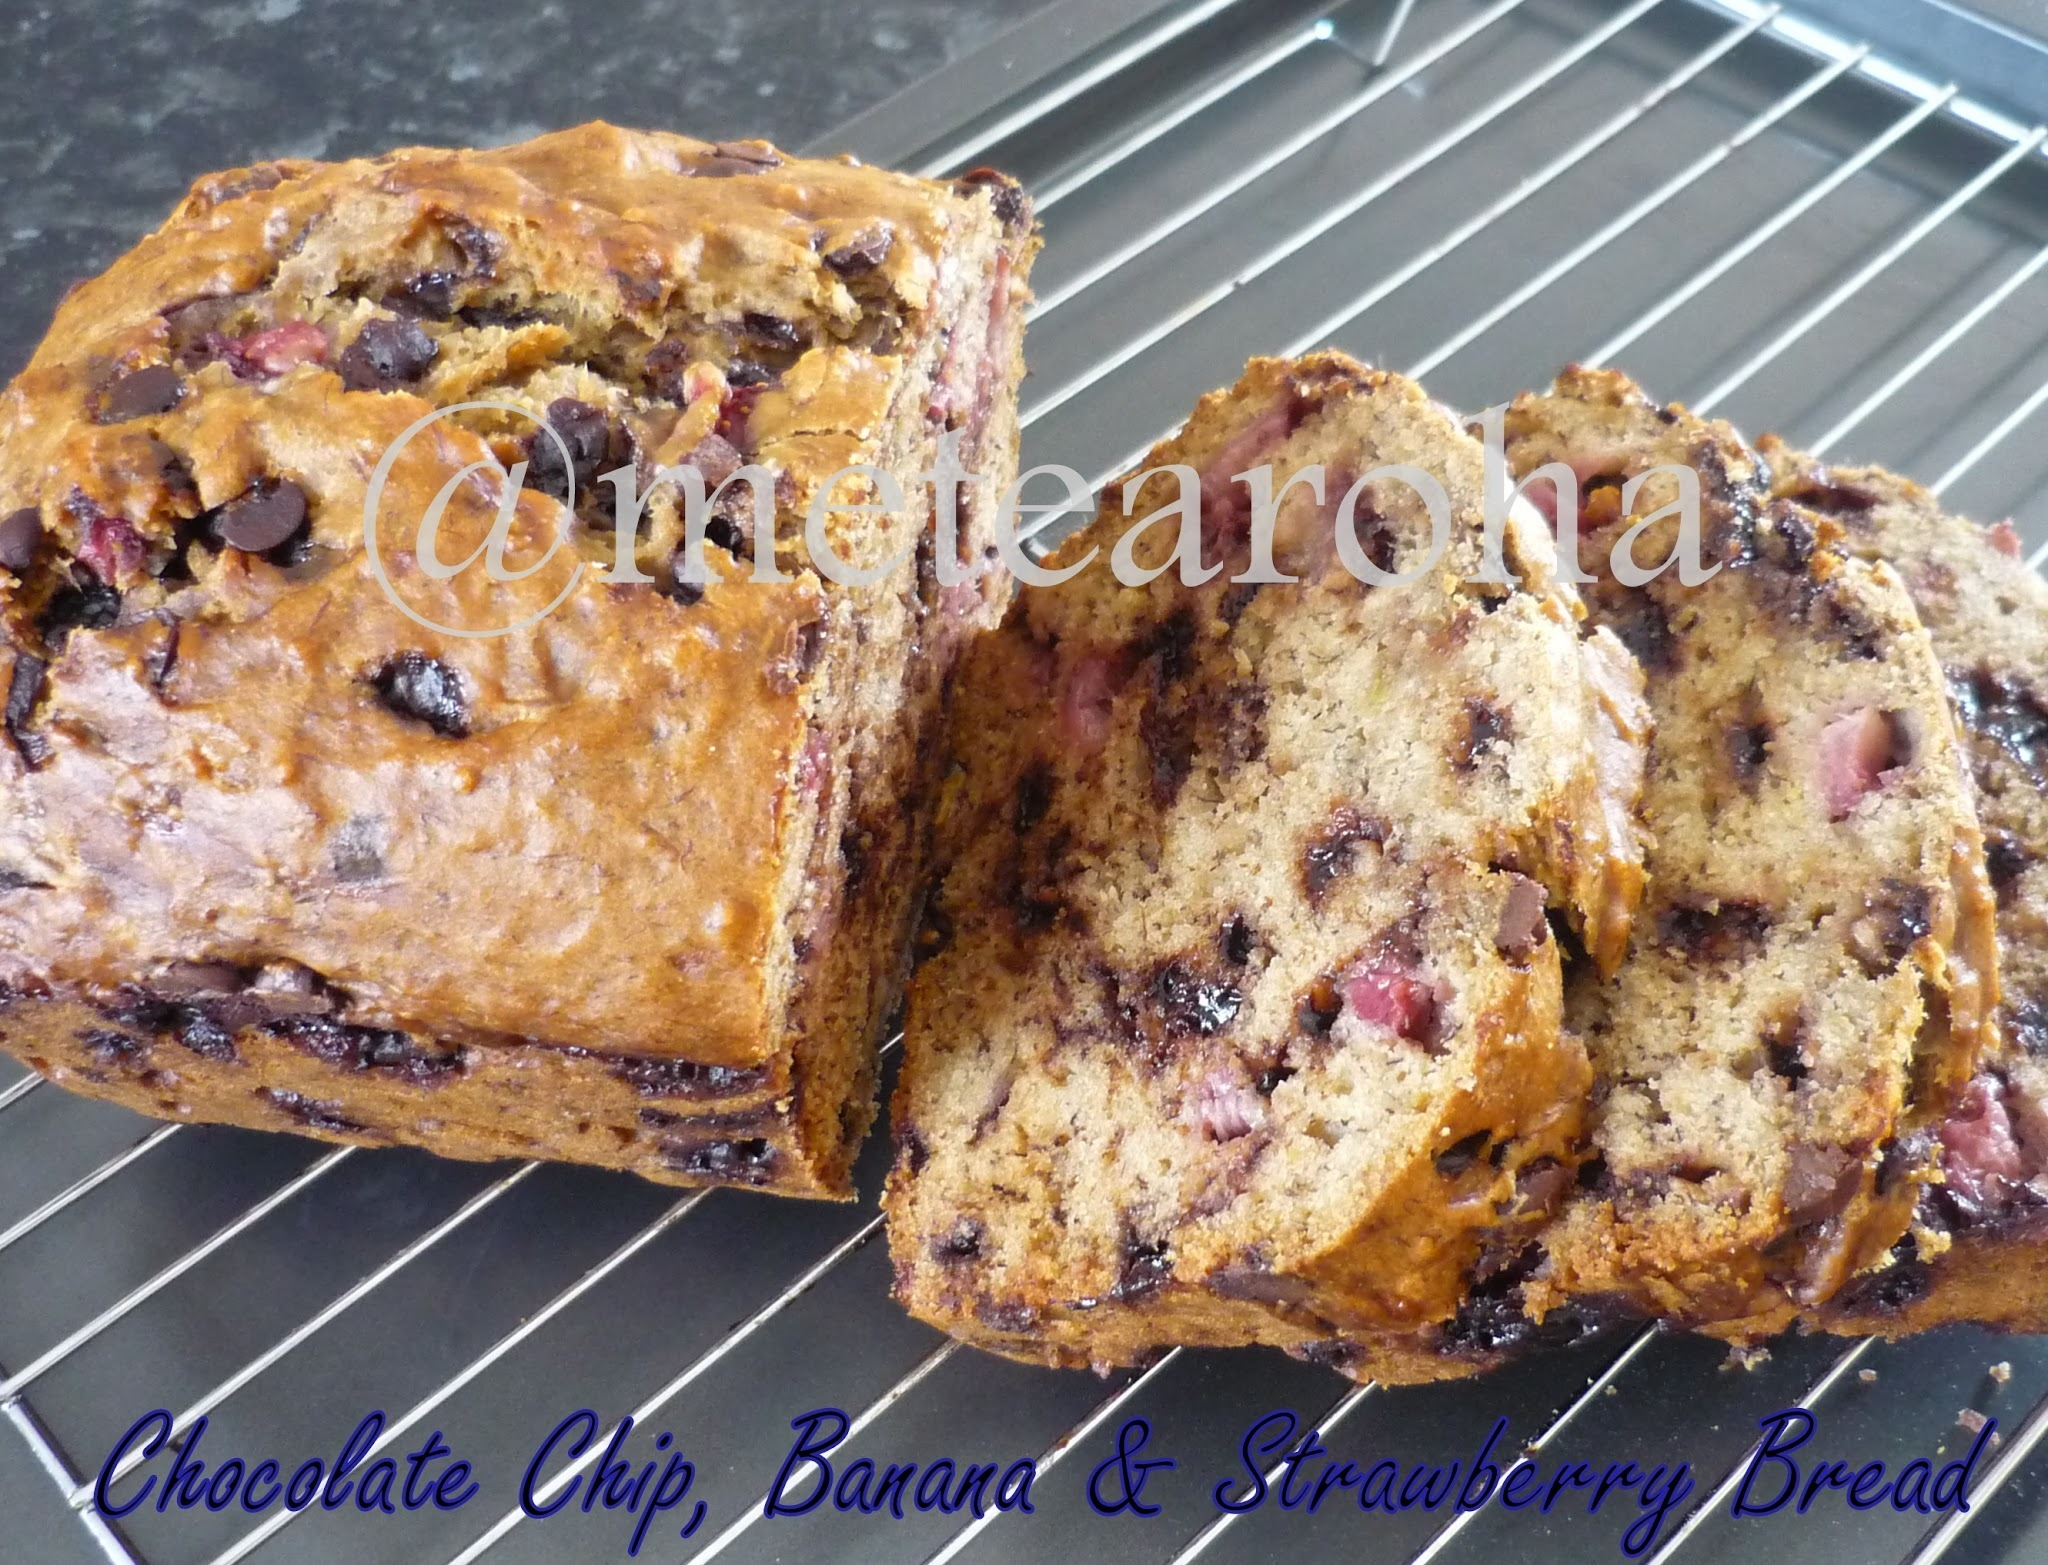 Chocolate Chip, Banana & Strawberry Bread